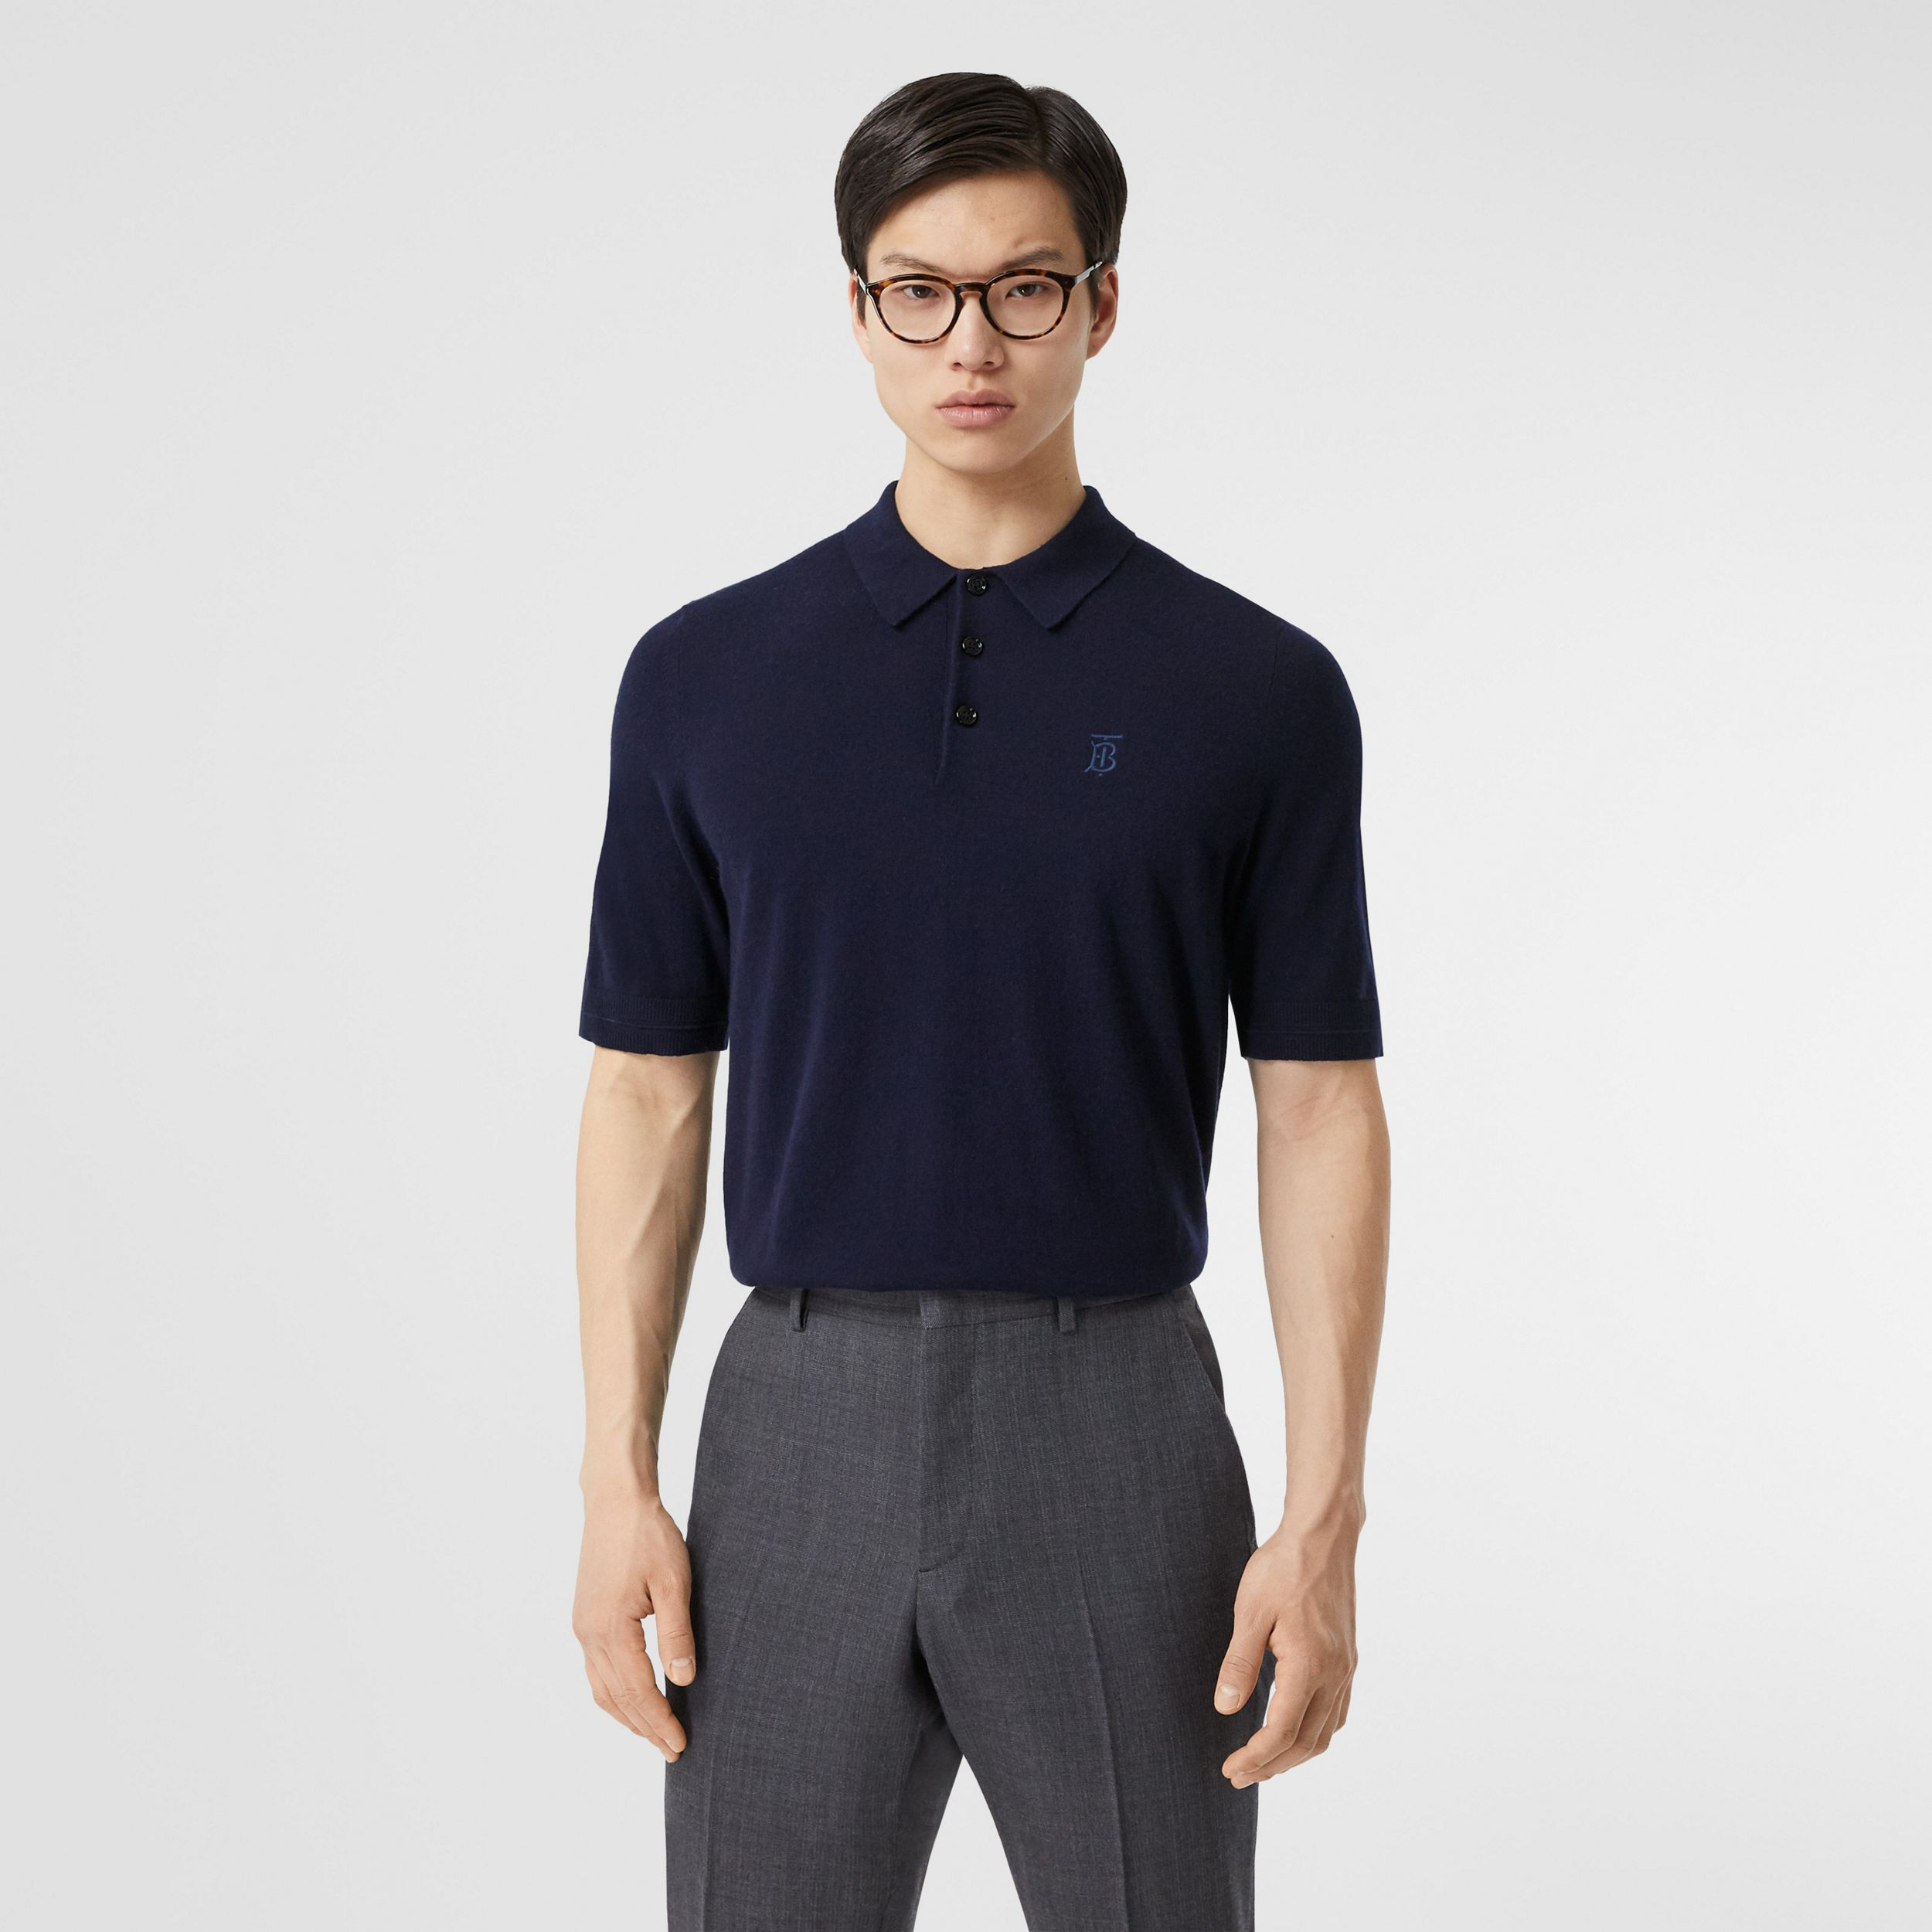 Monogram Motif Cashmere Polo Shirt in Navy - Men | Burberry - 1